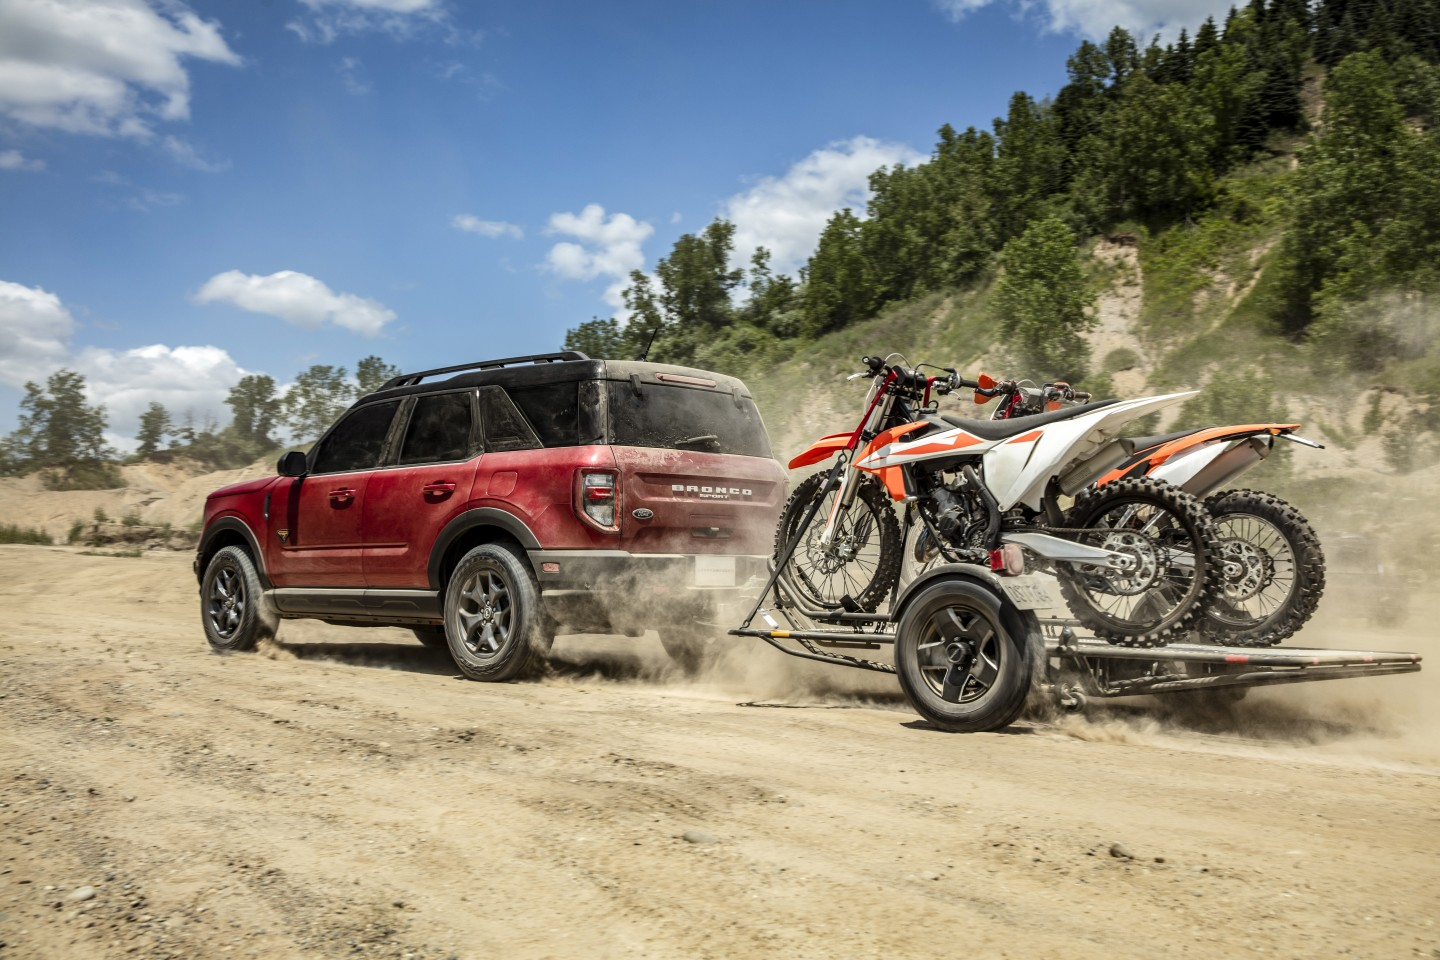 Ford is clearly marketing the adventure lifestyle with the new Bronco Sport